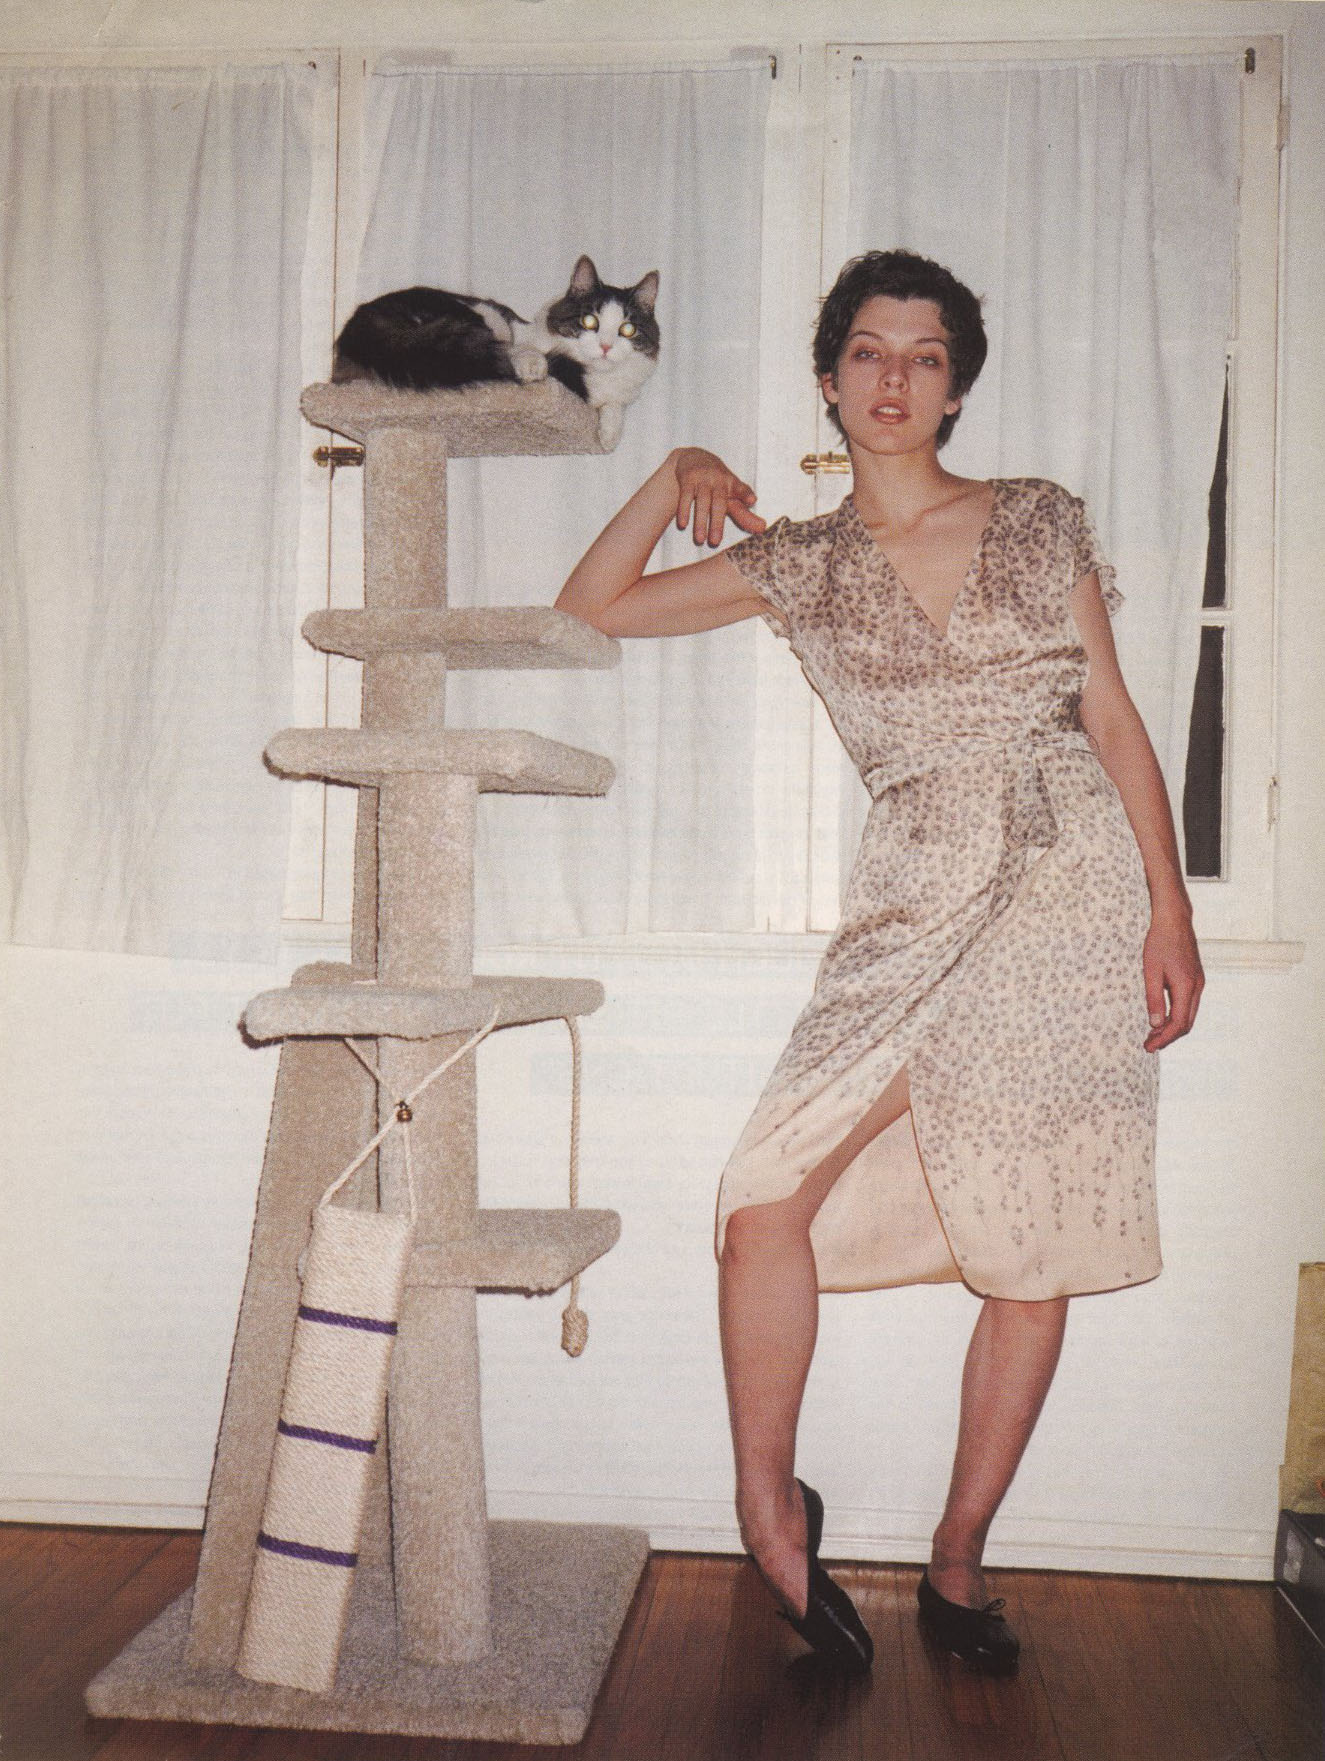 milla jovovich photography terry richardson dazed june 1999